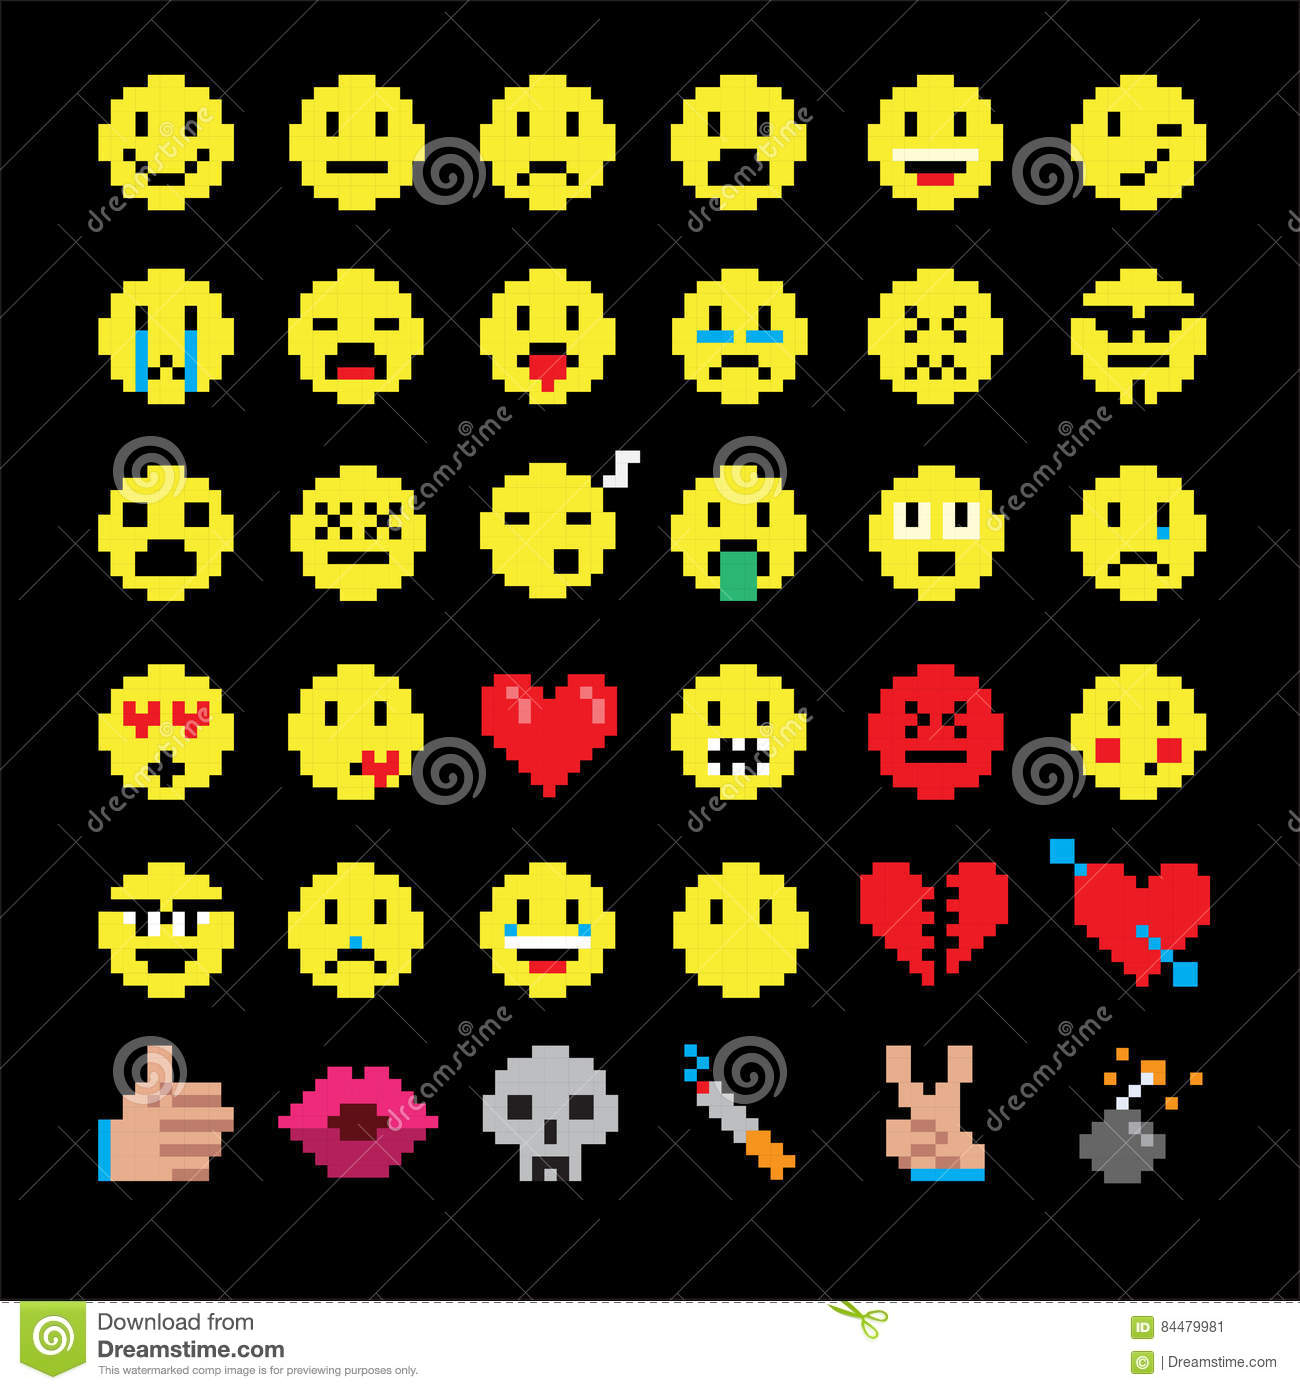 Vector Pixel Art Of Smiley Emoticon Set To Represent Various